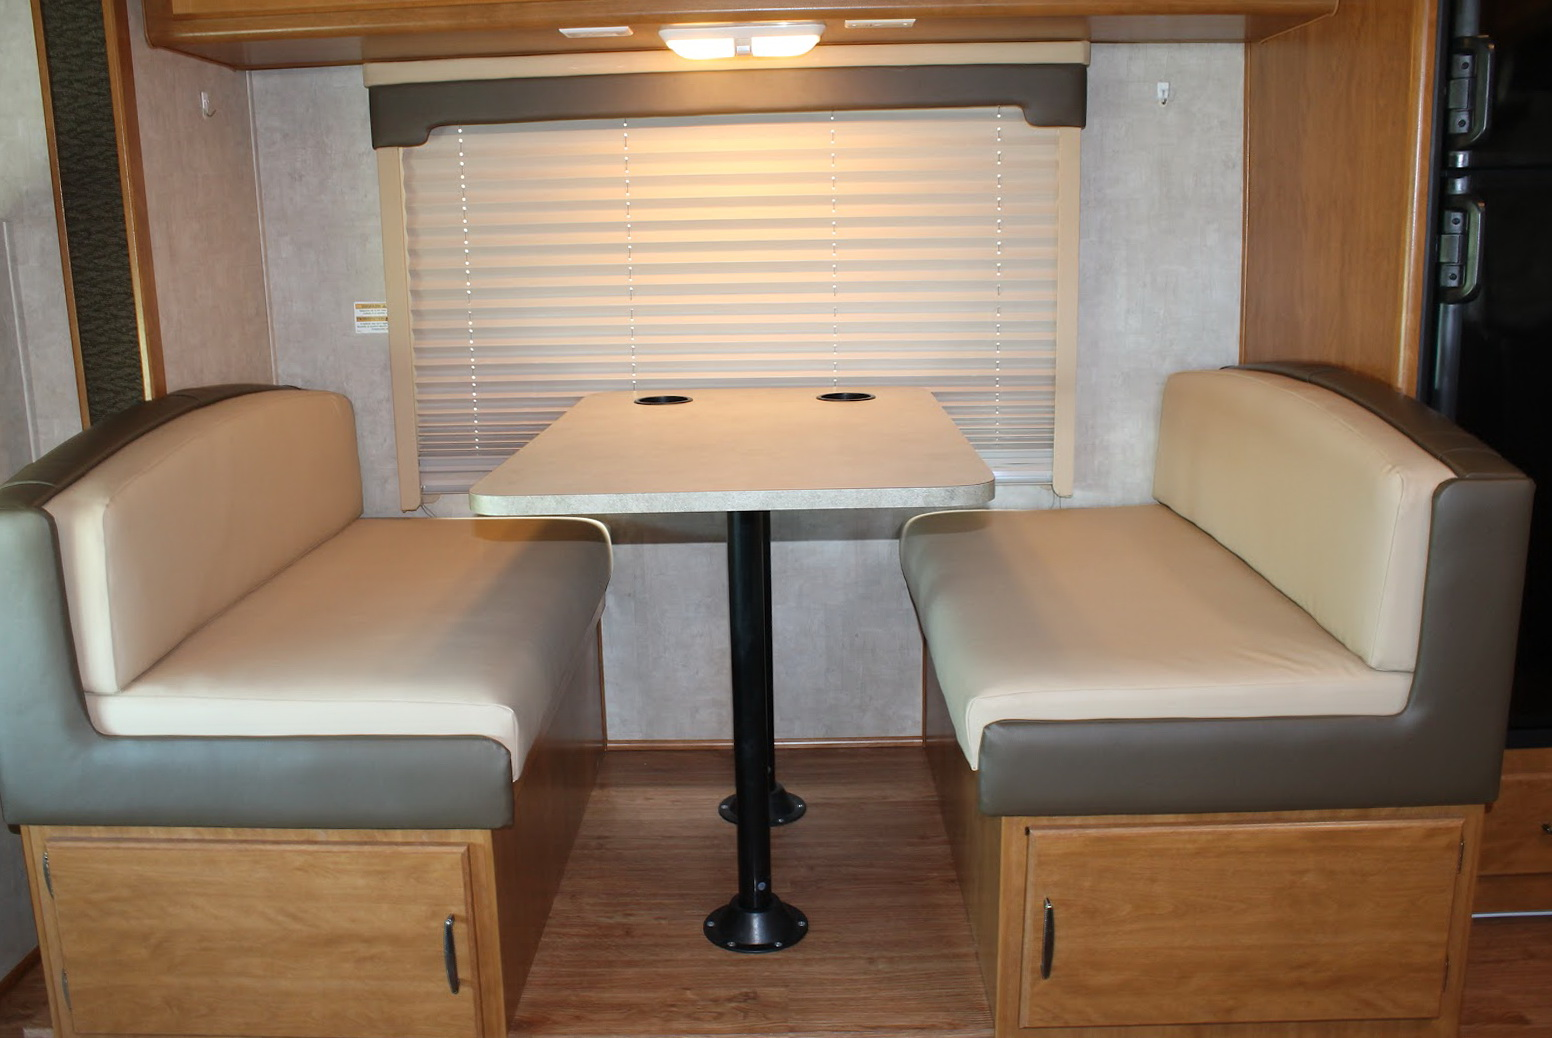 Replacement Cushion Covers For Rv